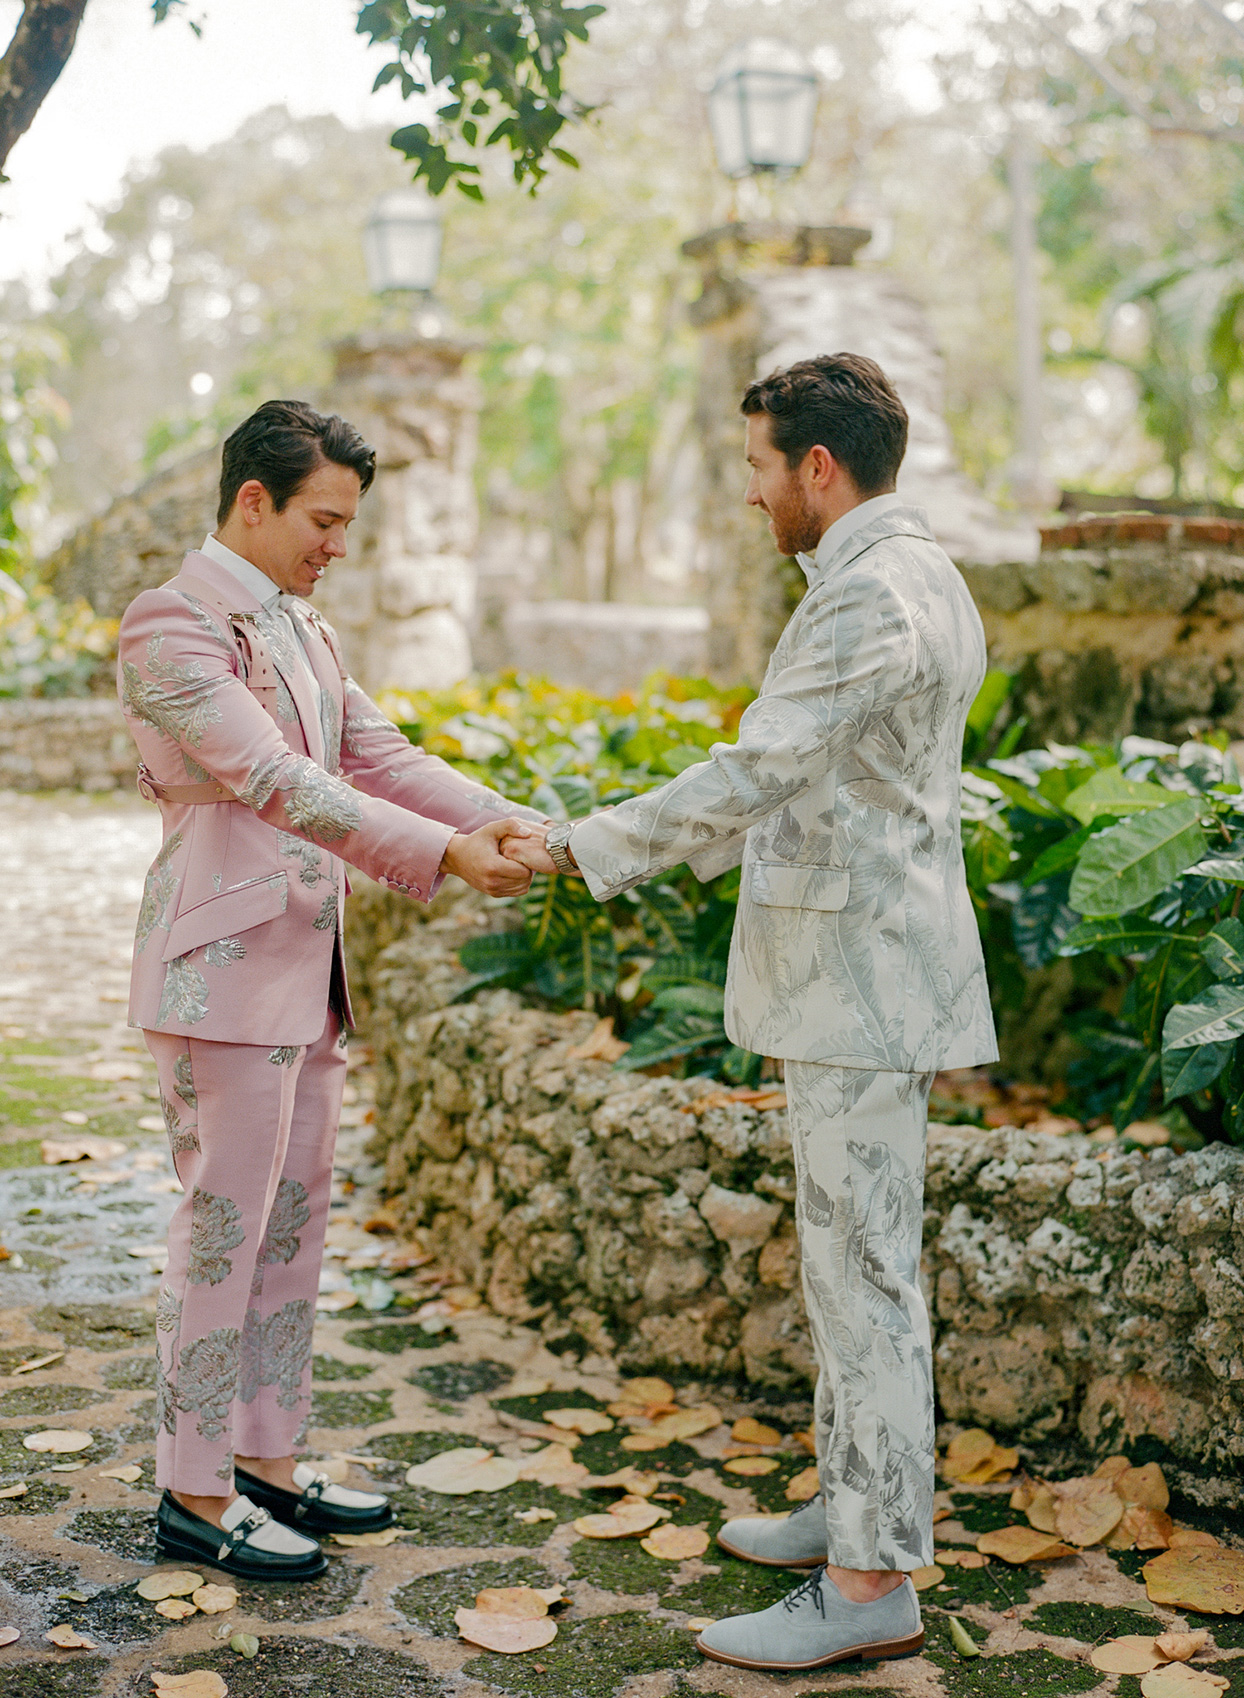 Grooms' first look